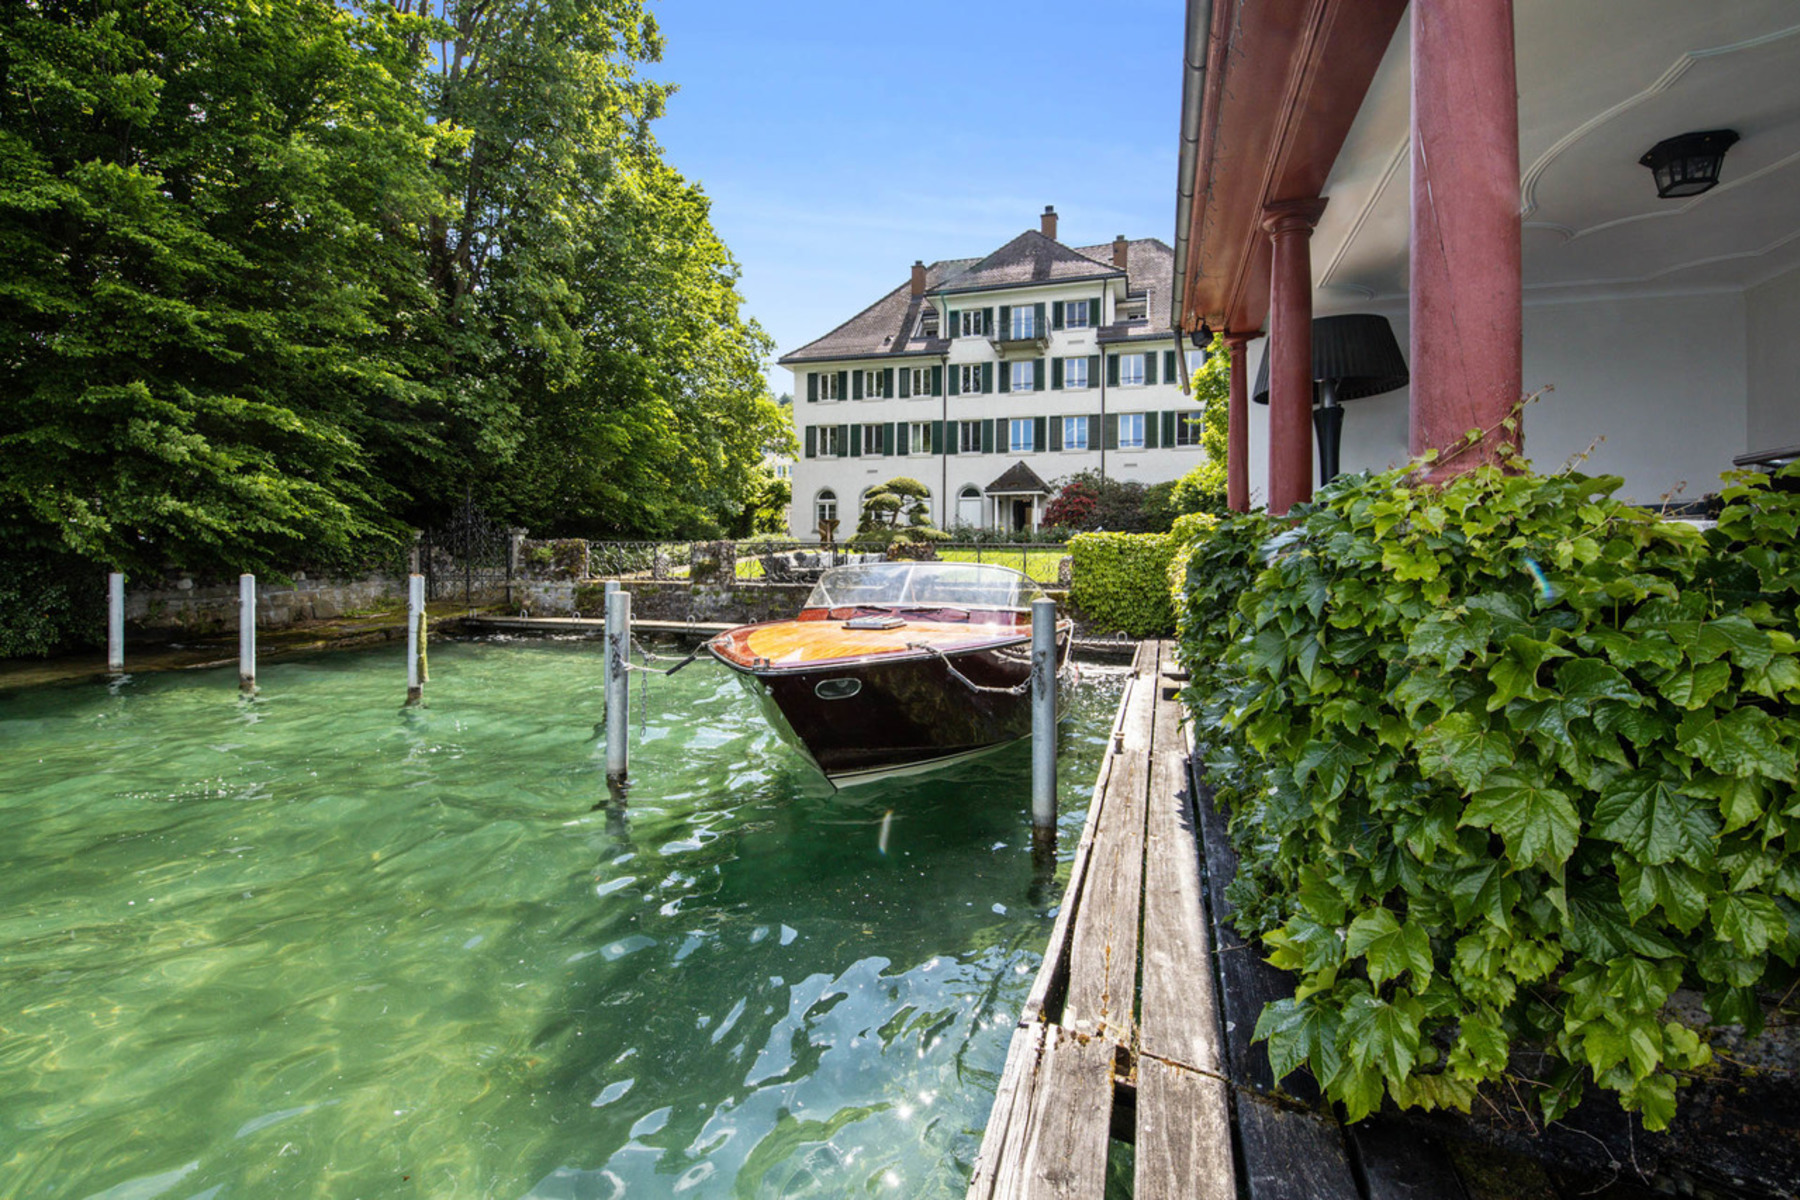 Single Family Homes for Sale at Historic villa with a private shore Wädenswil Wadenswil, Zurich 8820 Switzerland